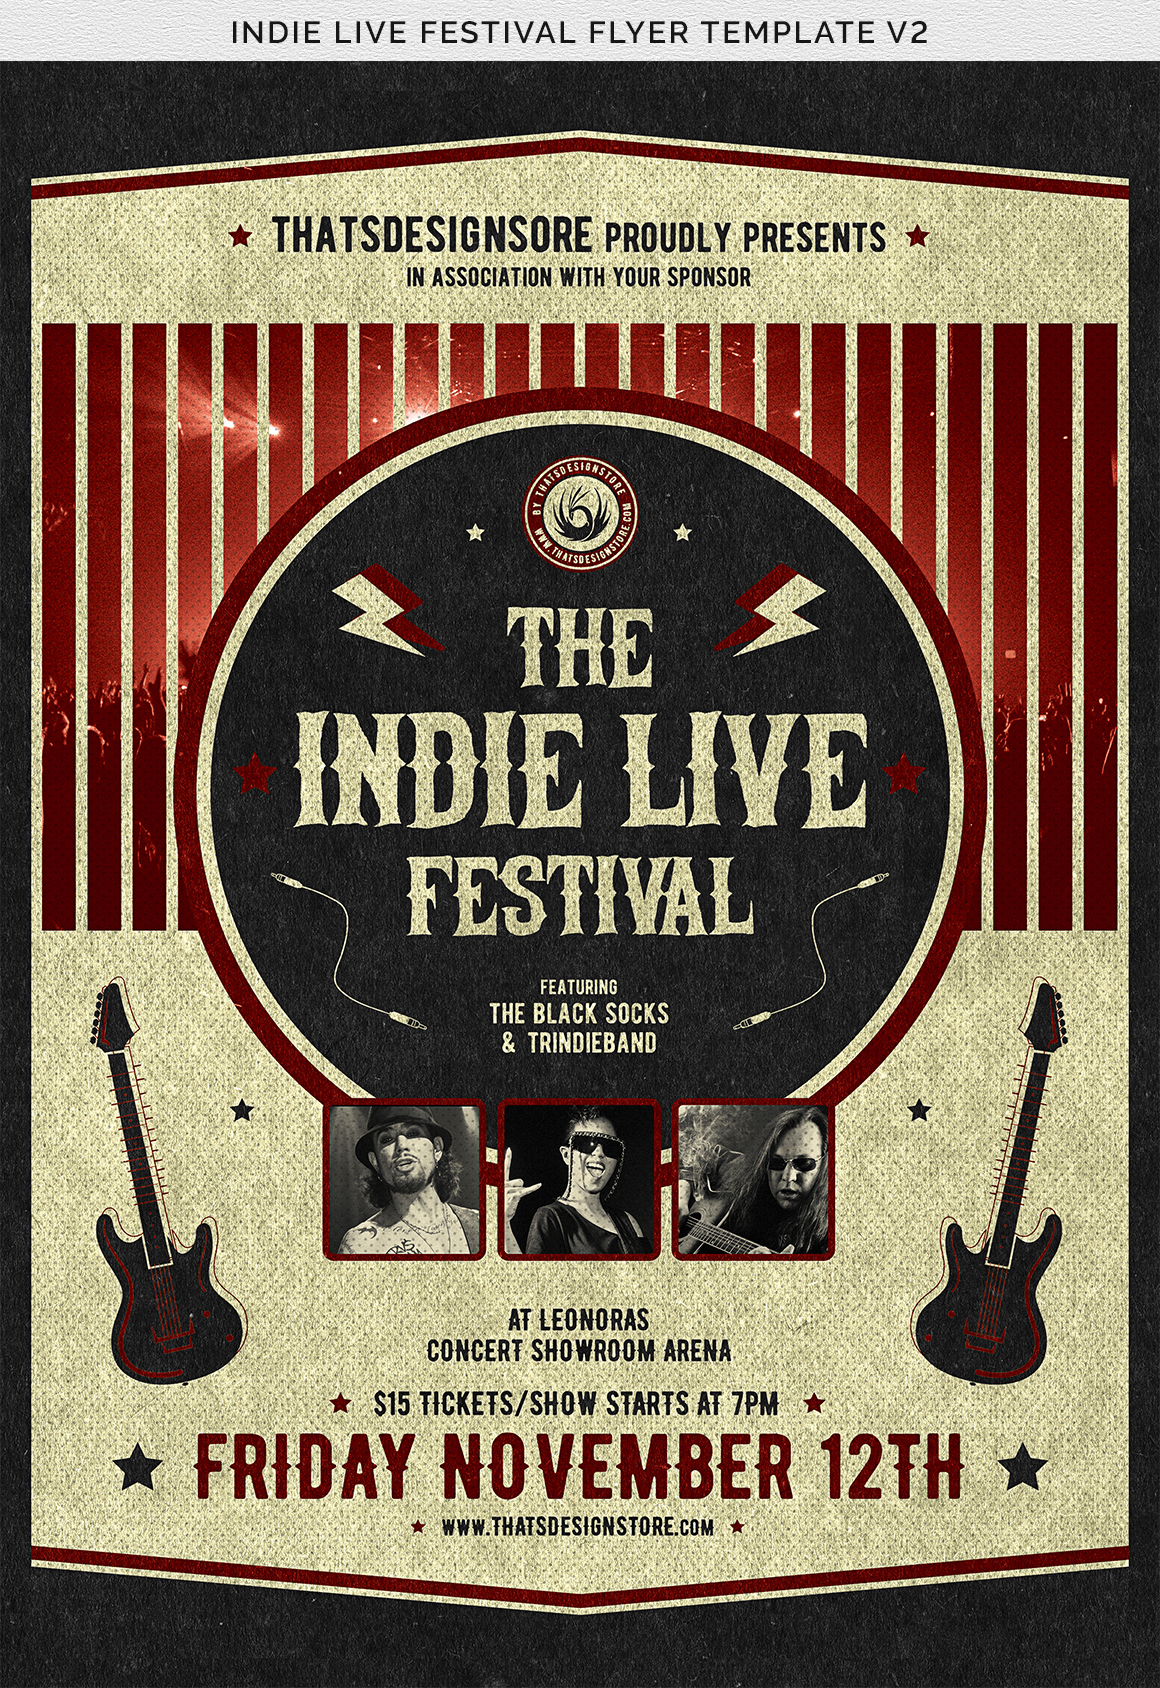 Indie Live Festival Flyer Template V2 example image 8